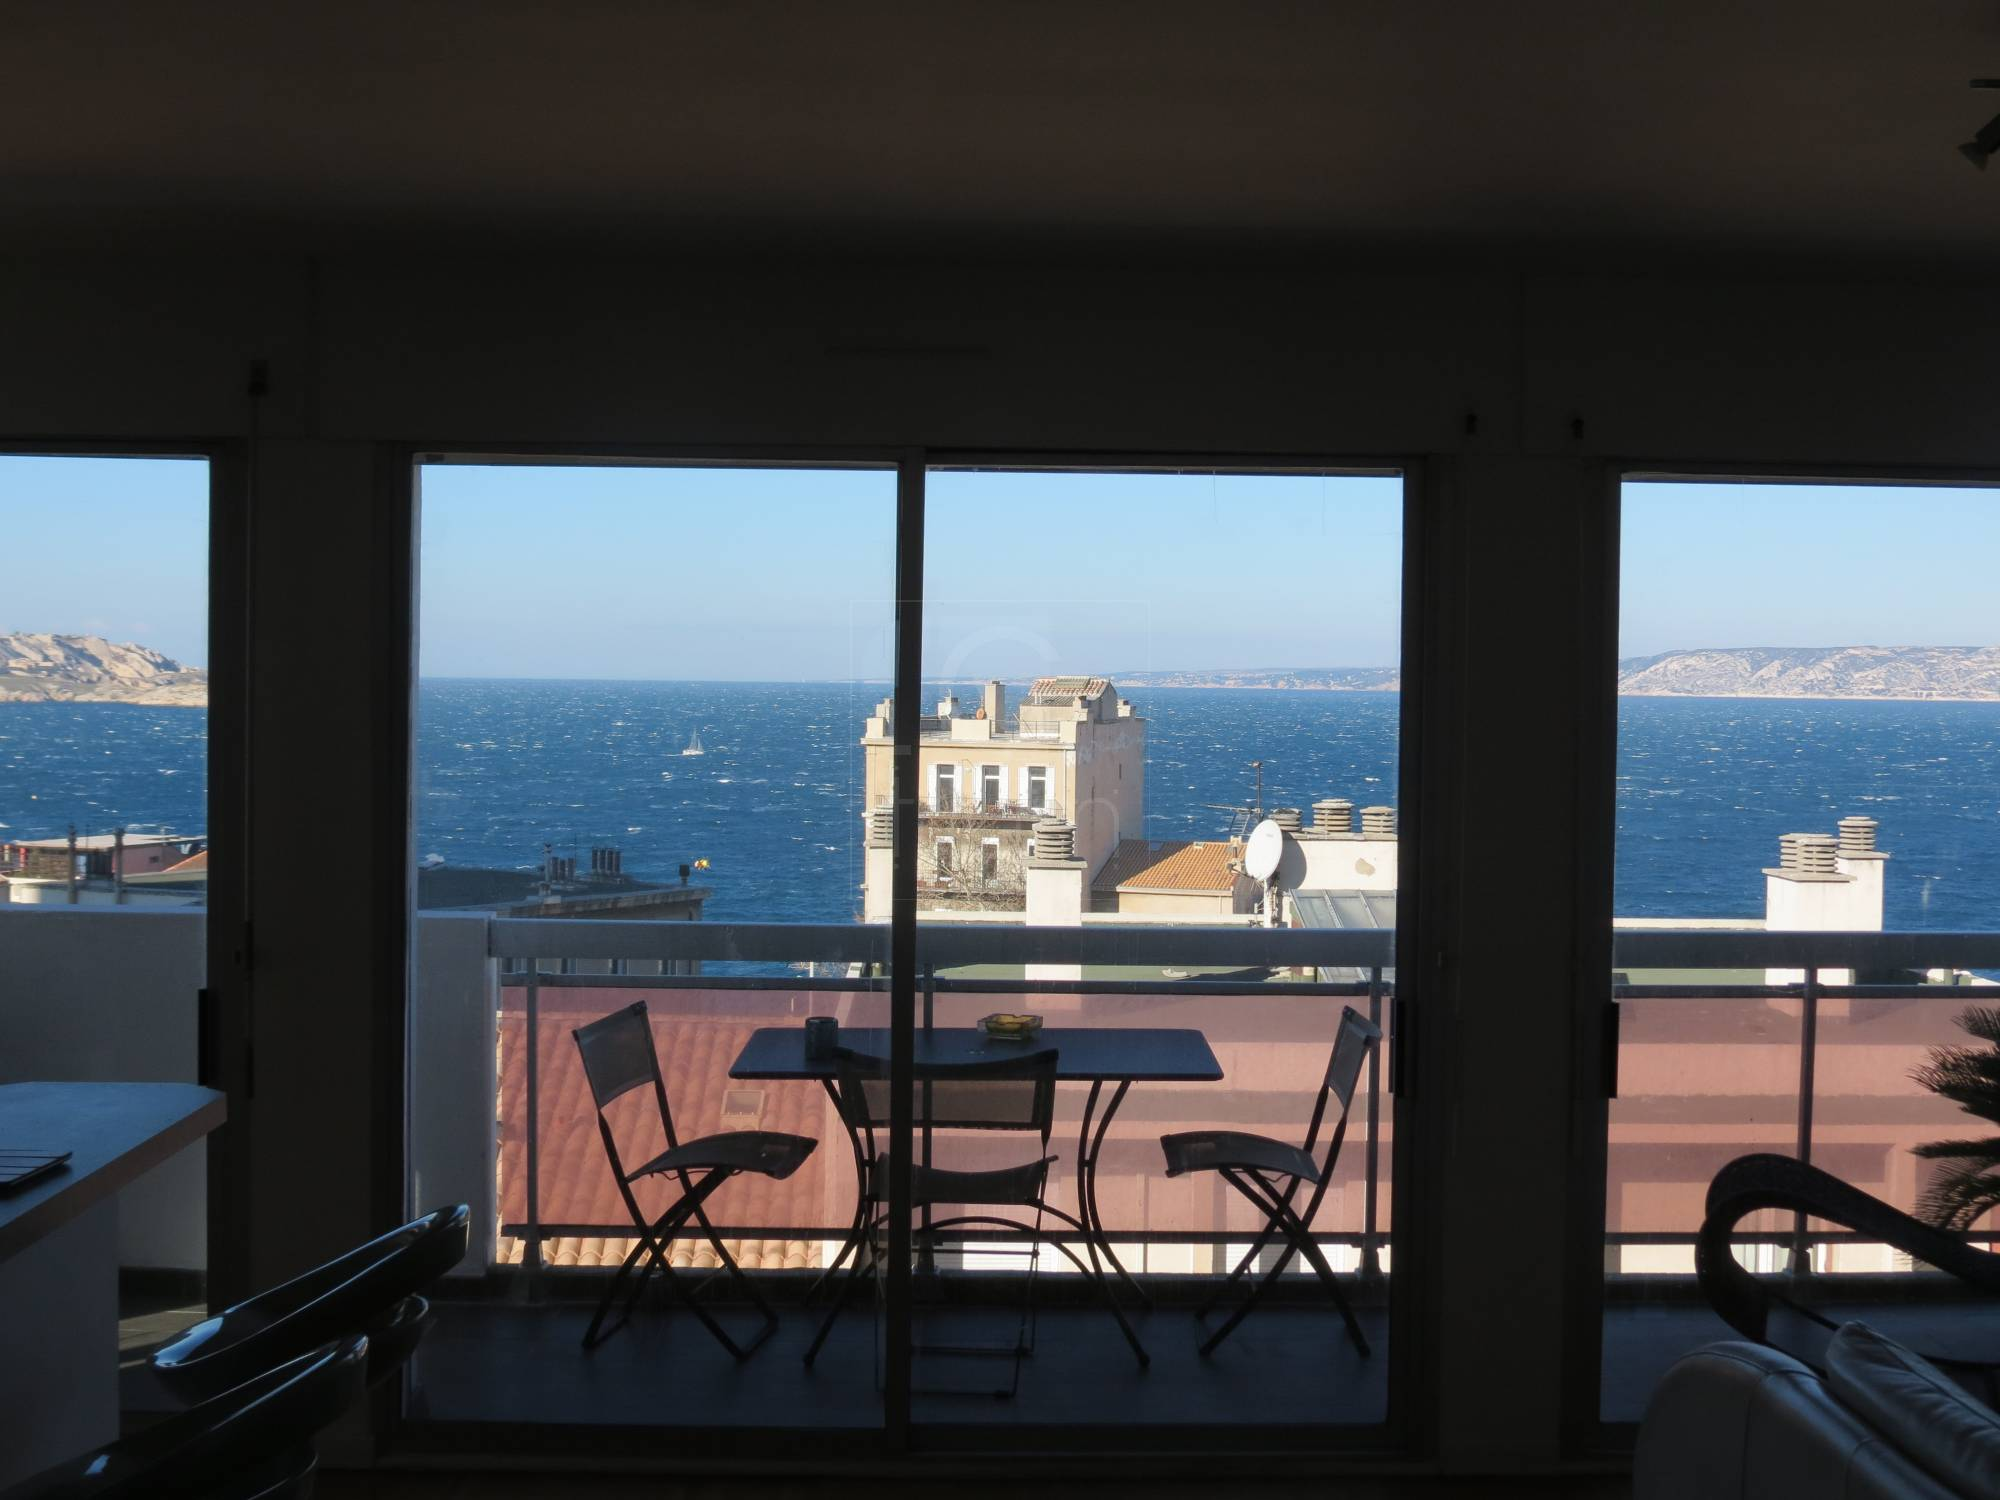 Vente appartement t5 f5 marseille 7eme vallon des auffes for Appartement terrasse 13007